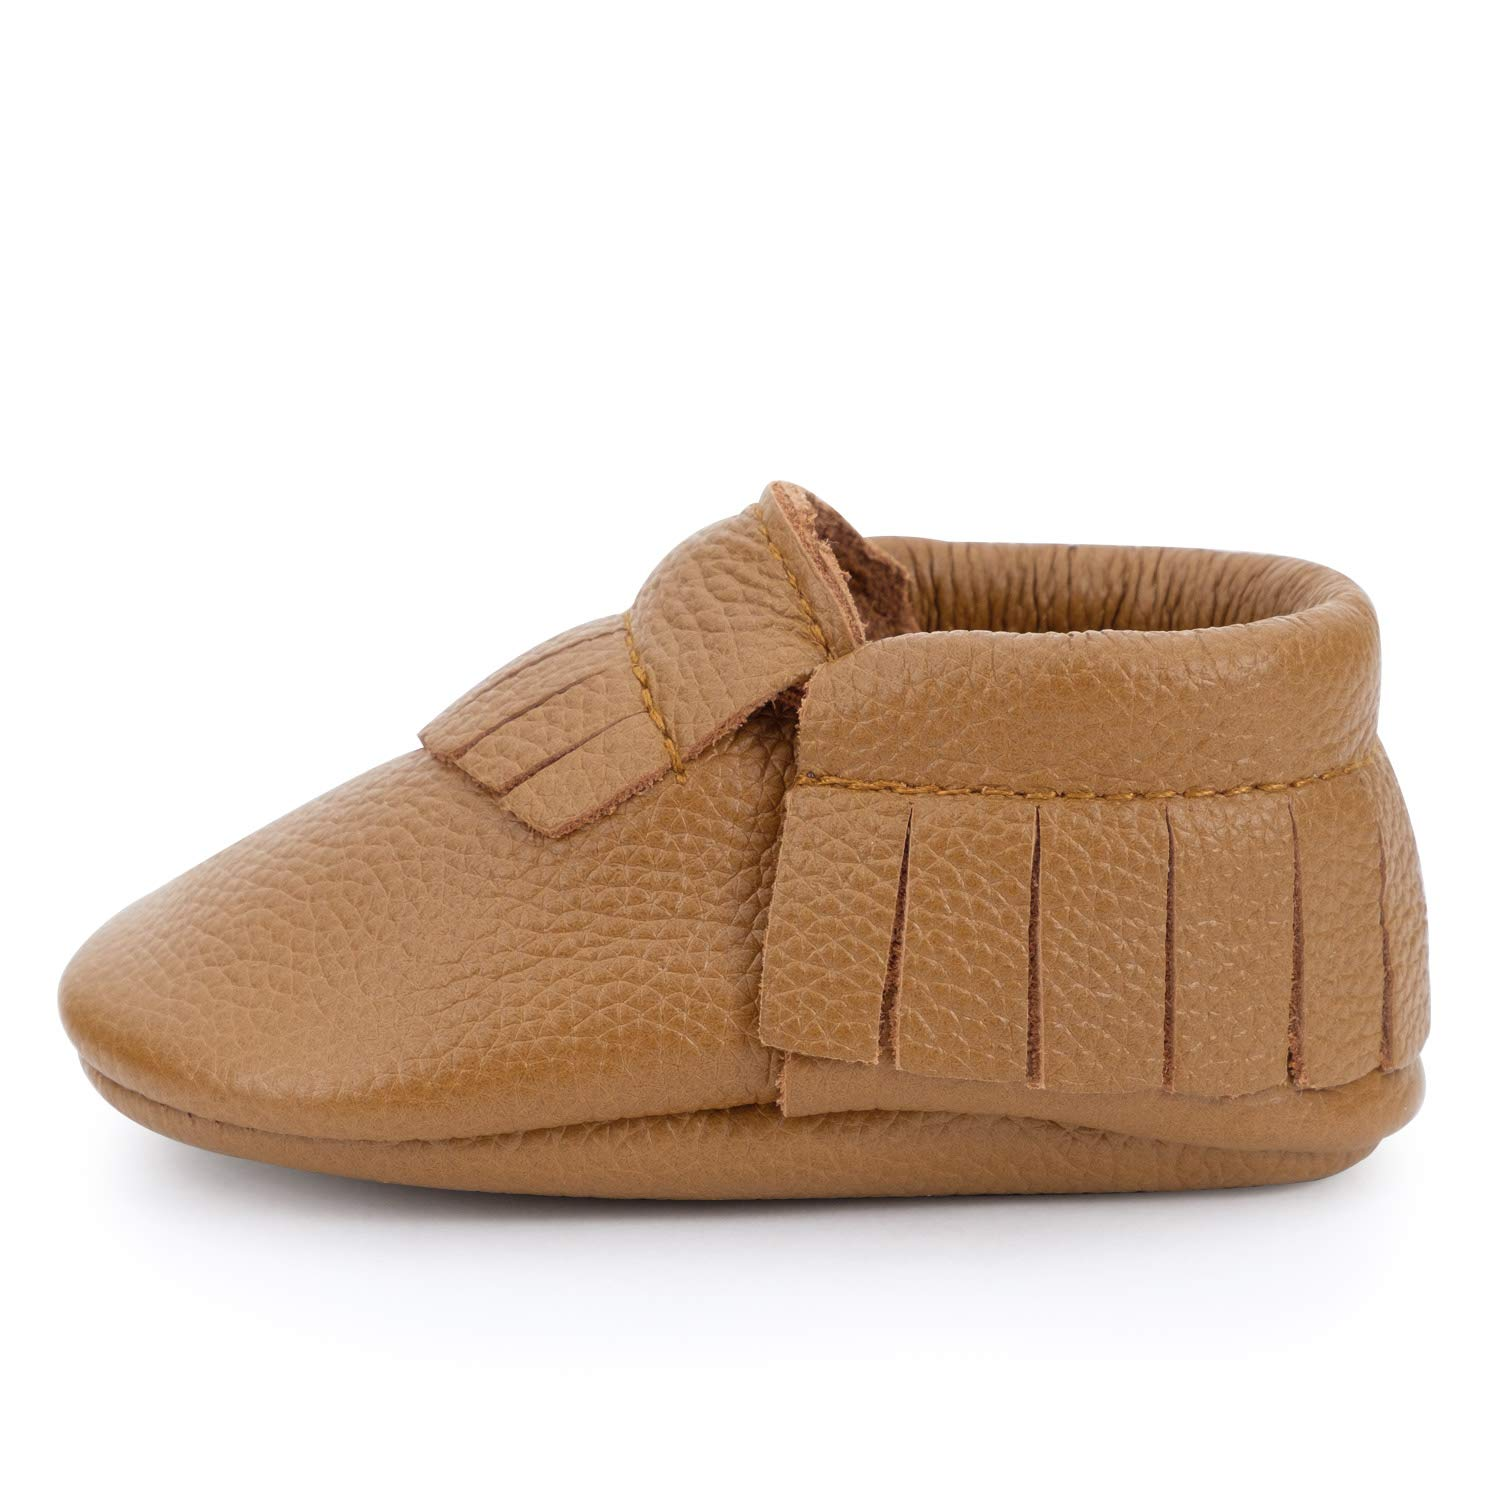 3348cb45778be BirdRock Baby Moccasins - 30+ Styles for Boys   Girls! Every Pair Feeds a  Child